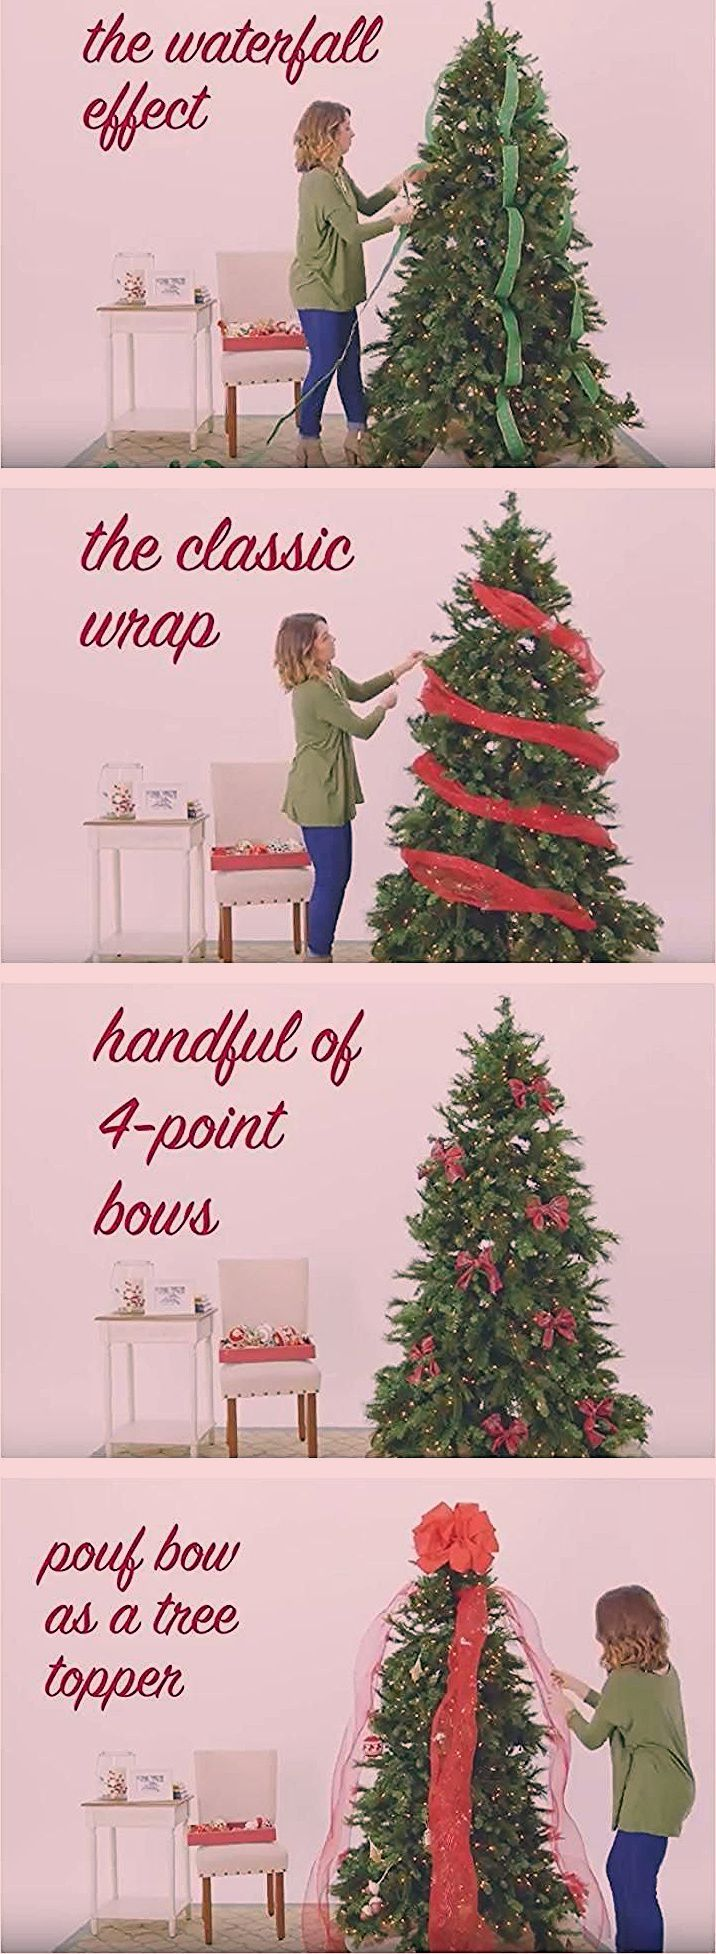 If you're looking for a creative way to decorate your tree this holiday, watch our how-to video with 5 Ways to Use Ribbon on Your Christmas Tree! It shows how you can achieve the waterfall effect, the classic wrap, 4 point bows, a pouf bow as a tree topper and ribbon bunches. #ribbononchristmastreeideas